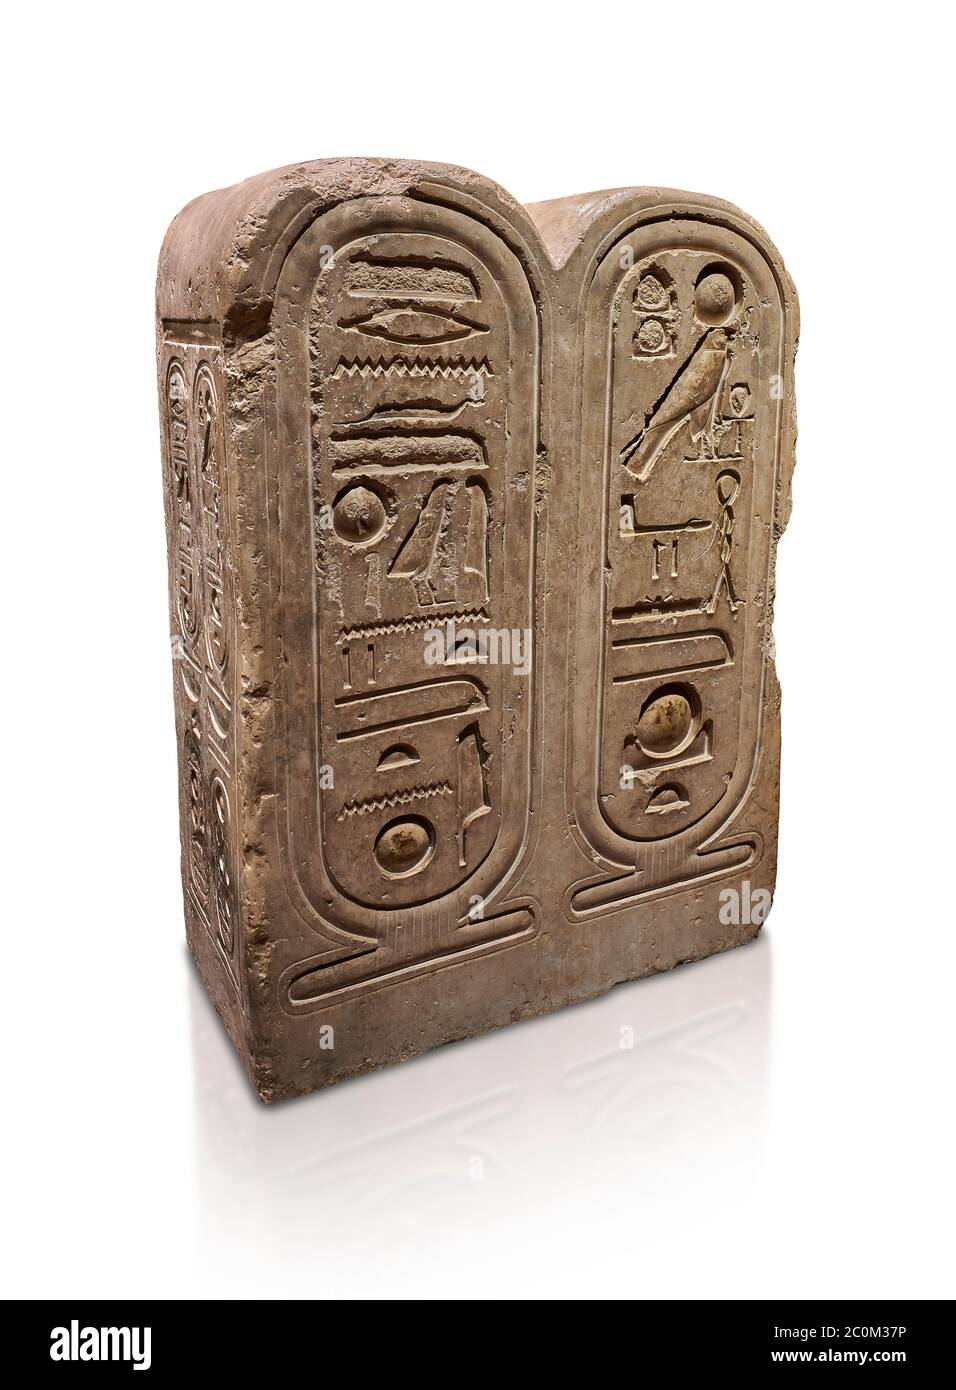 Ancient Egyptian architectonic element of the temple of Aten, Karnak, limestone, New Kingdom 18th Dynasty (1353-1336 BC). Egyptian Museum, Turin. whit Stock Photo